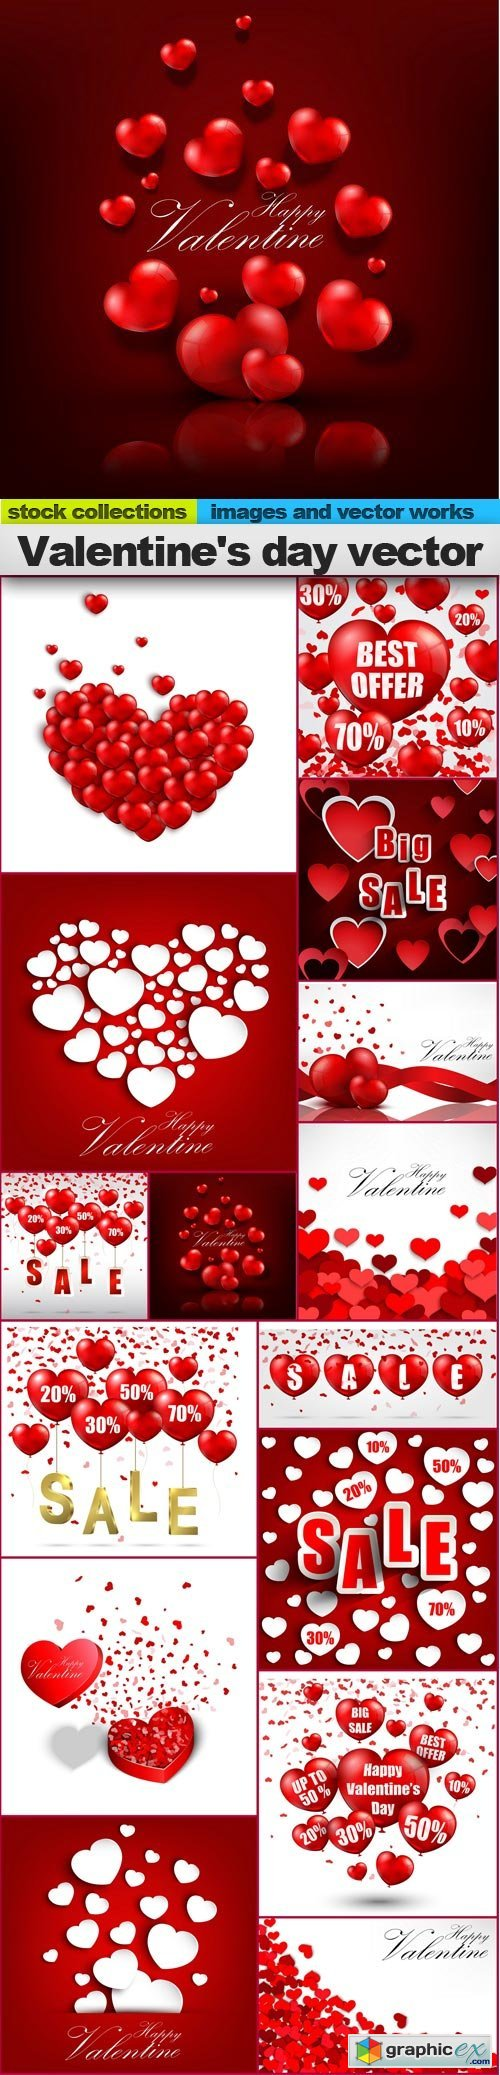 Valentine's day vector, 15 x EPS